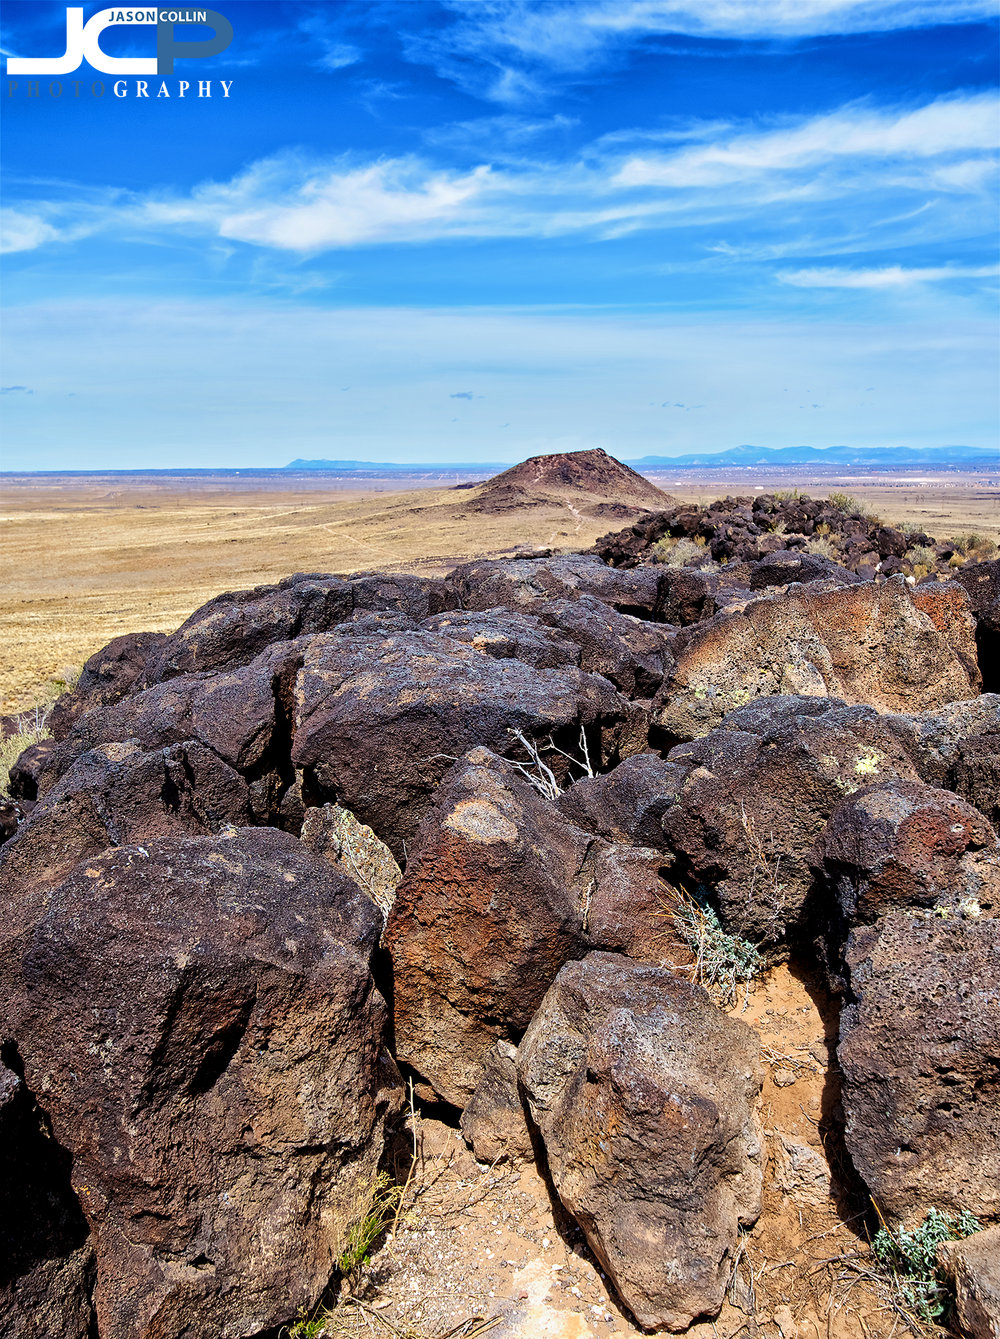 Atop Black Volcano at Petroglyphs in New Mexico - Nikon D750 with Tamron 15-30mm lens